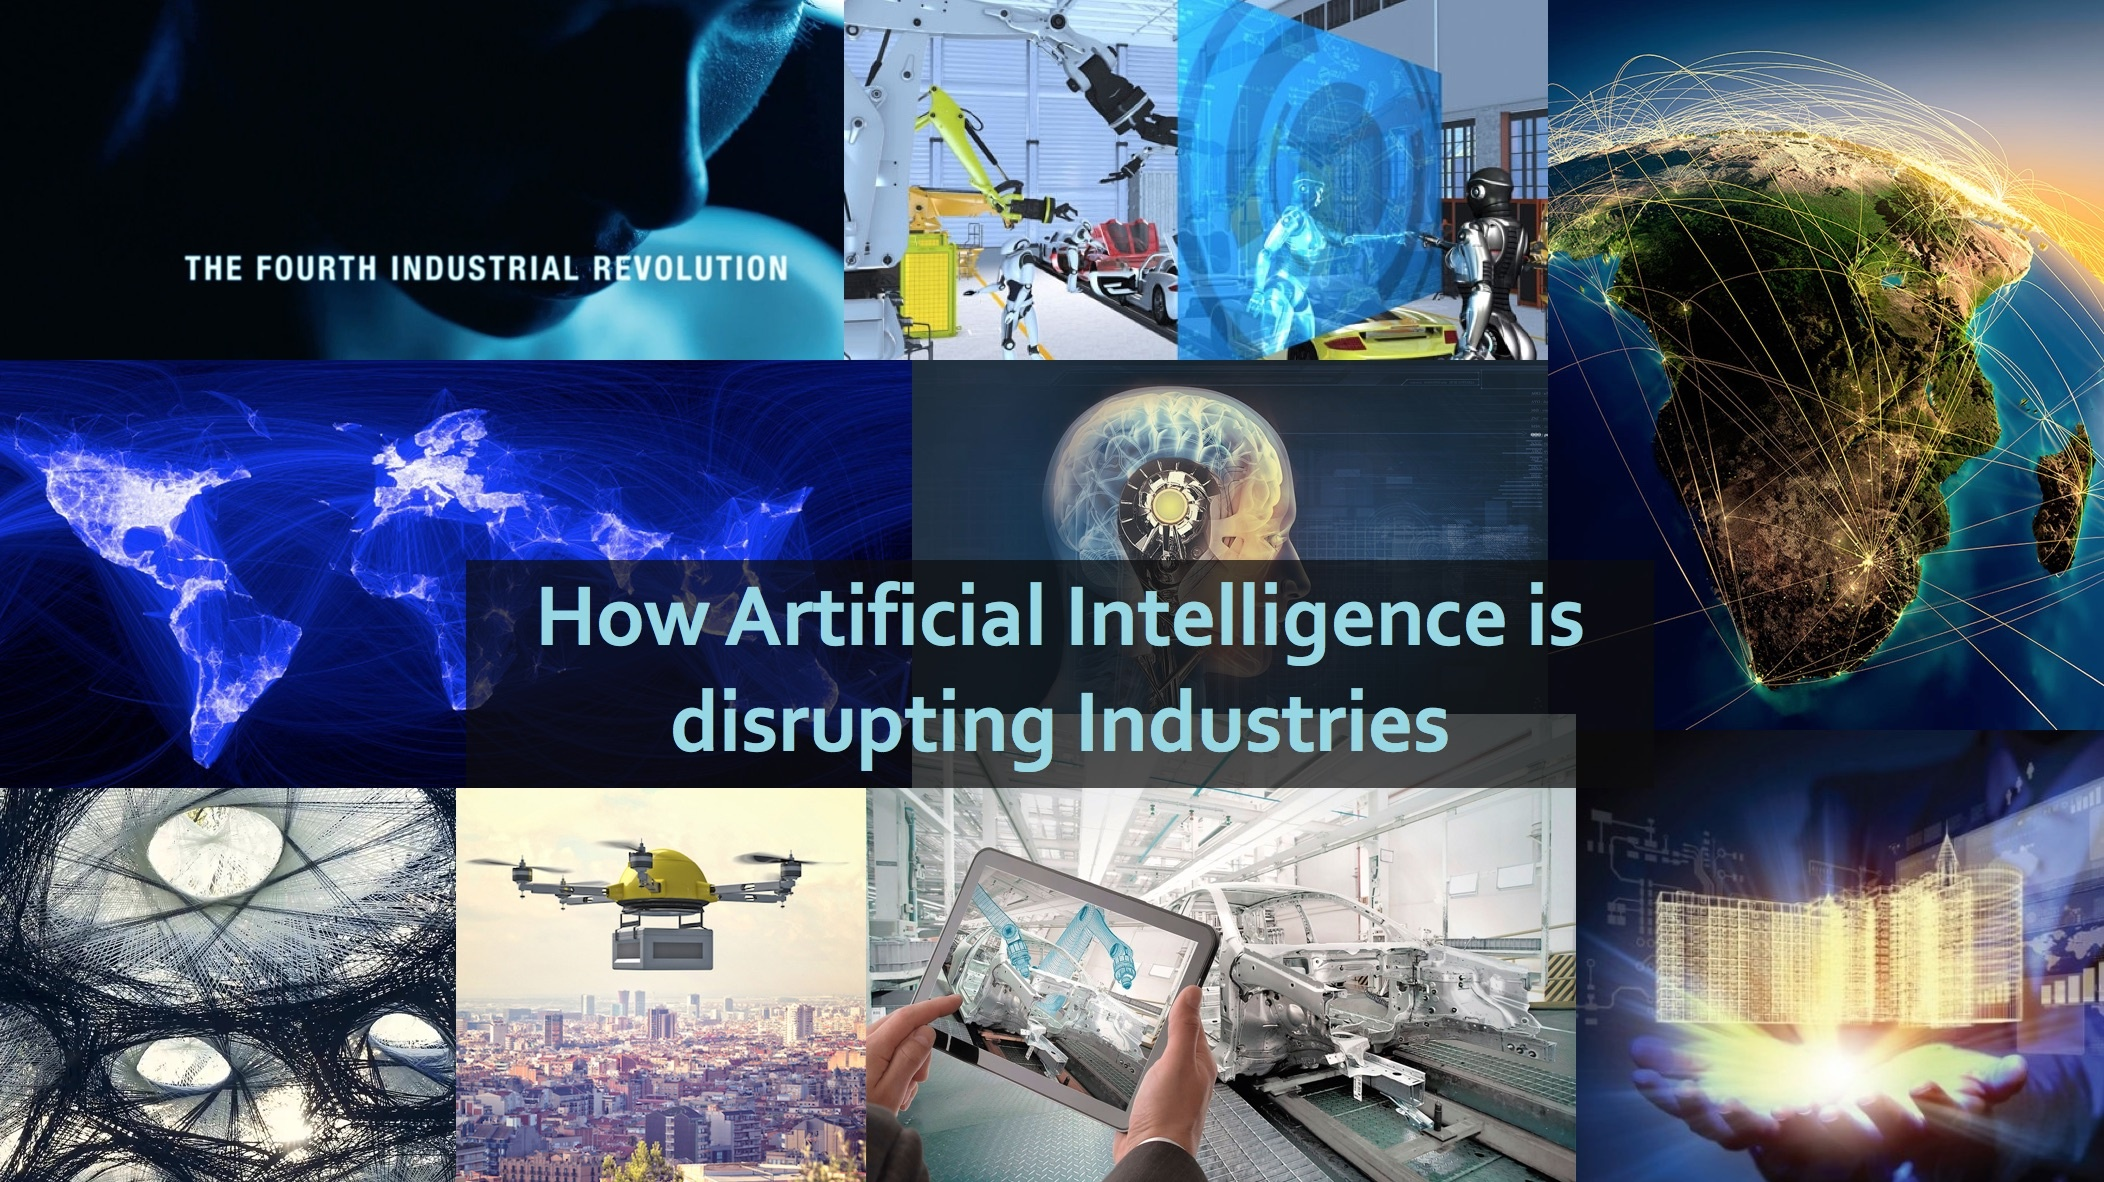 How Artificial Intelligence disrupts Industries